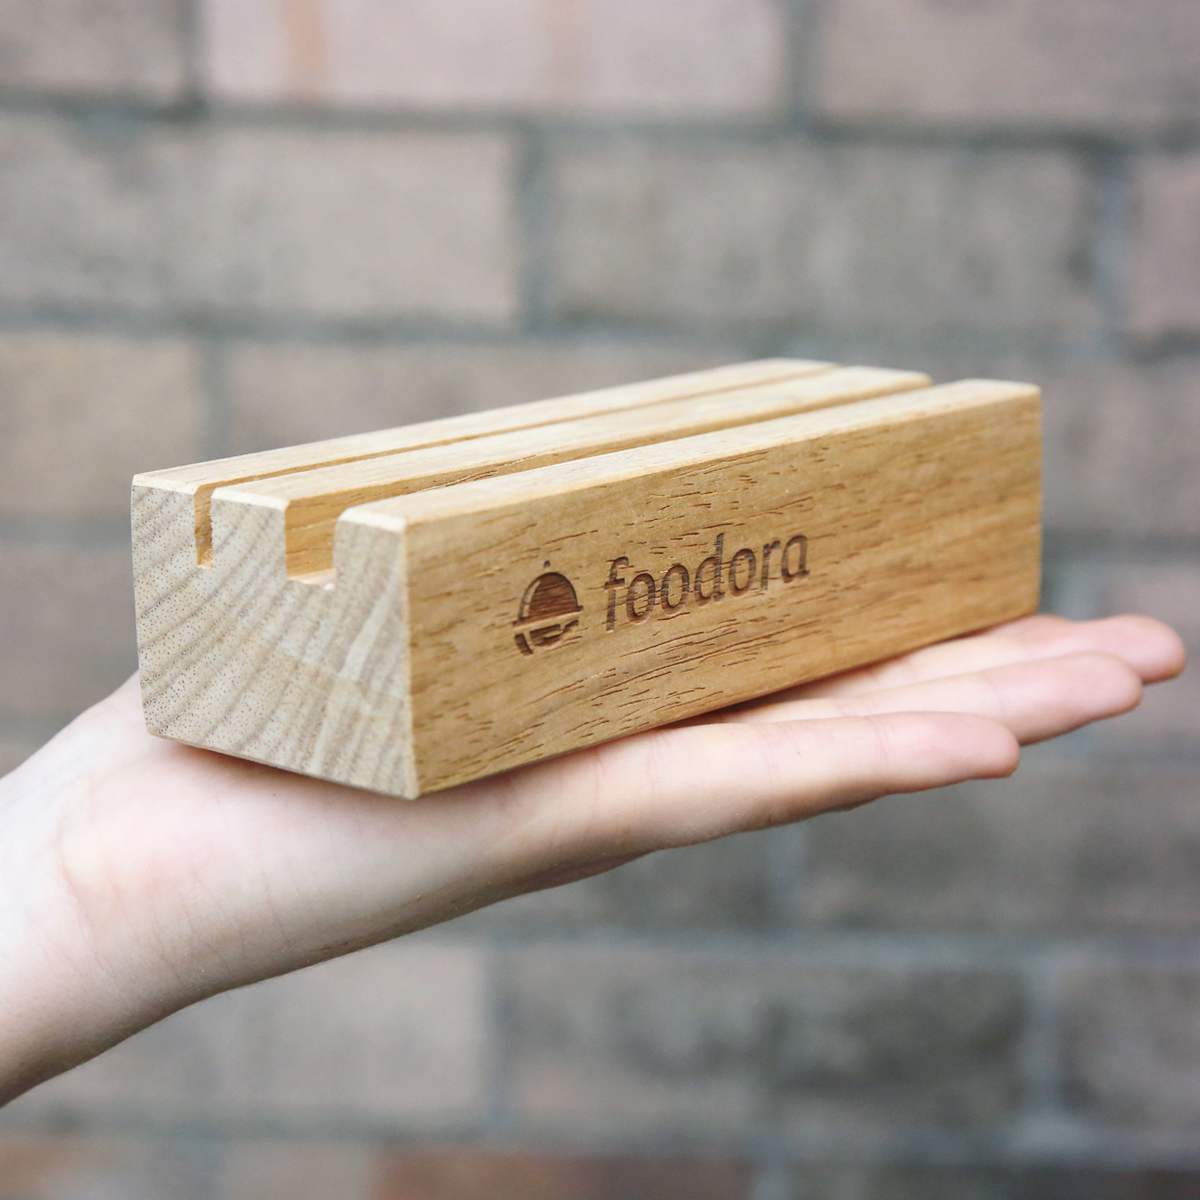 https://thelaserco.com/wp-content/uploads/2020/07/Foodora_Wooden_Menu_Holders_4.jpg